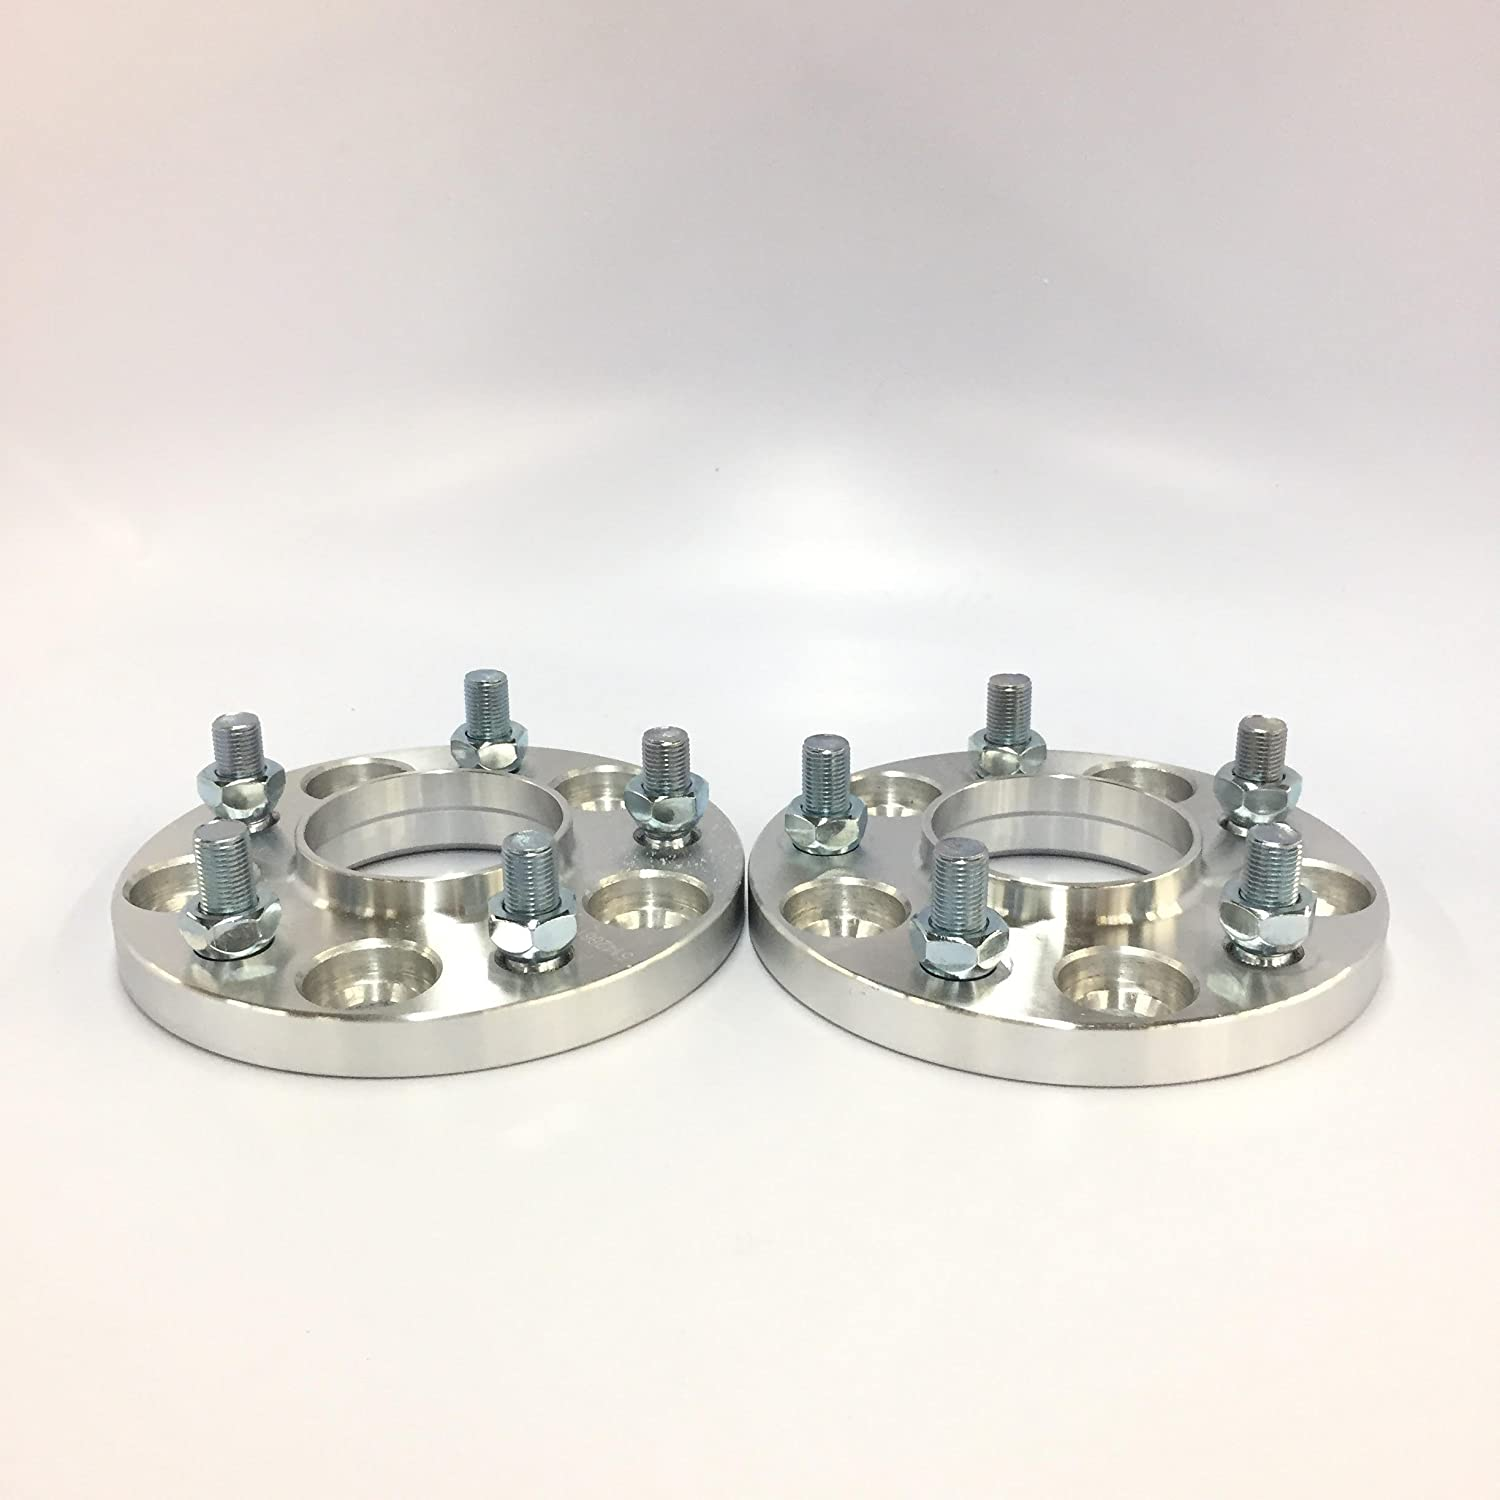 5x105 to 5x100 Center Bore 56.5mm to 54.1mm Thread 12x1.5 Customadeonly 4 Pieces 0.59 15mm Silver Hub Centric Conversion Wheel Adapters Spacers Change Bolt Pattern